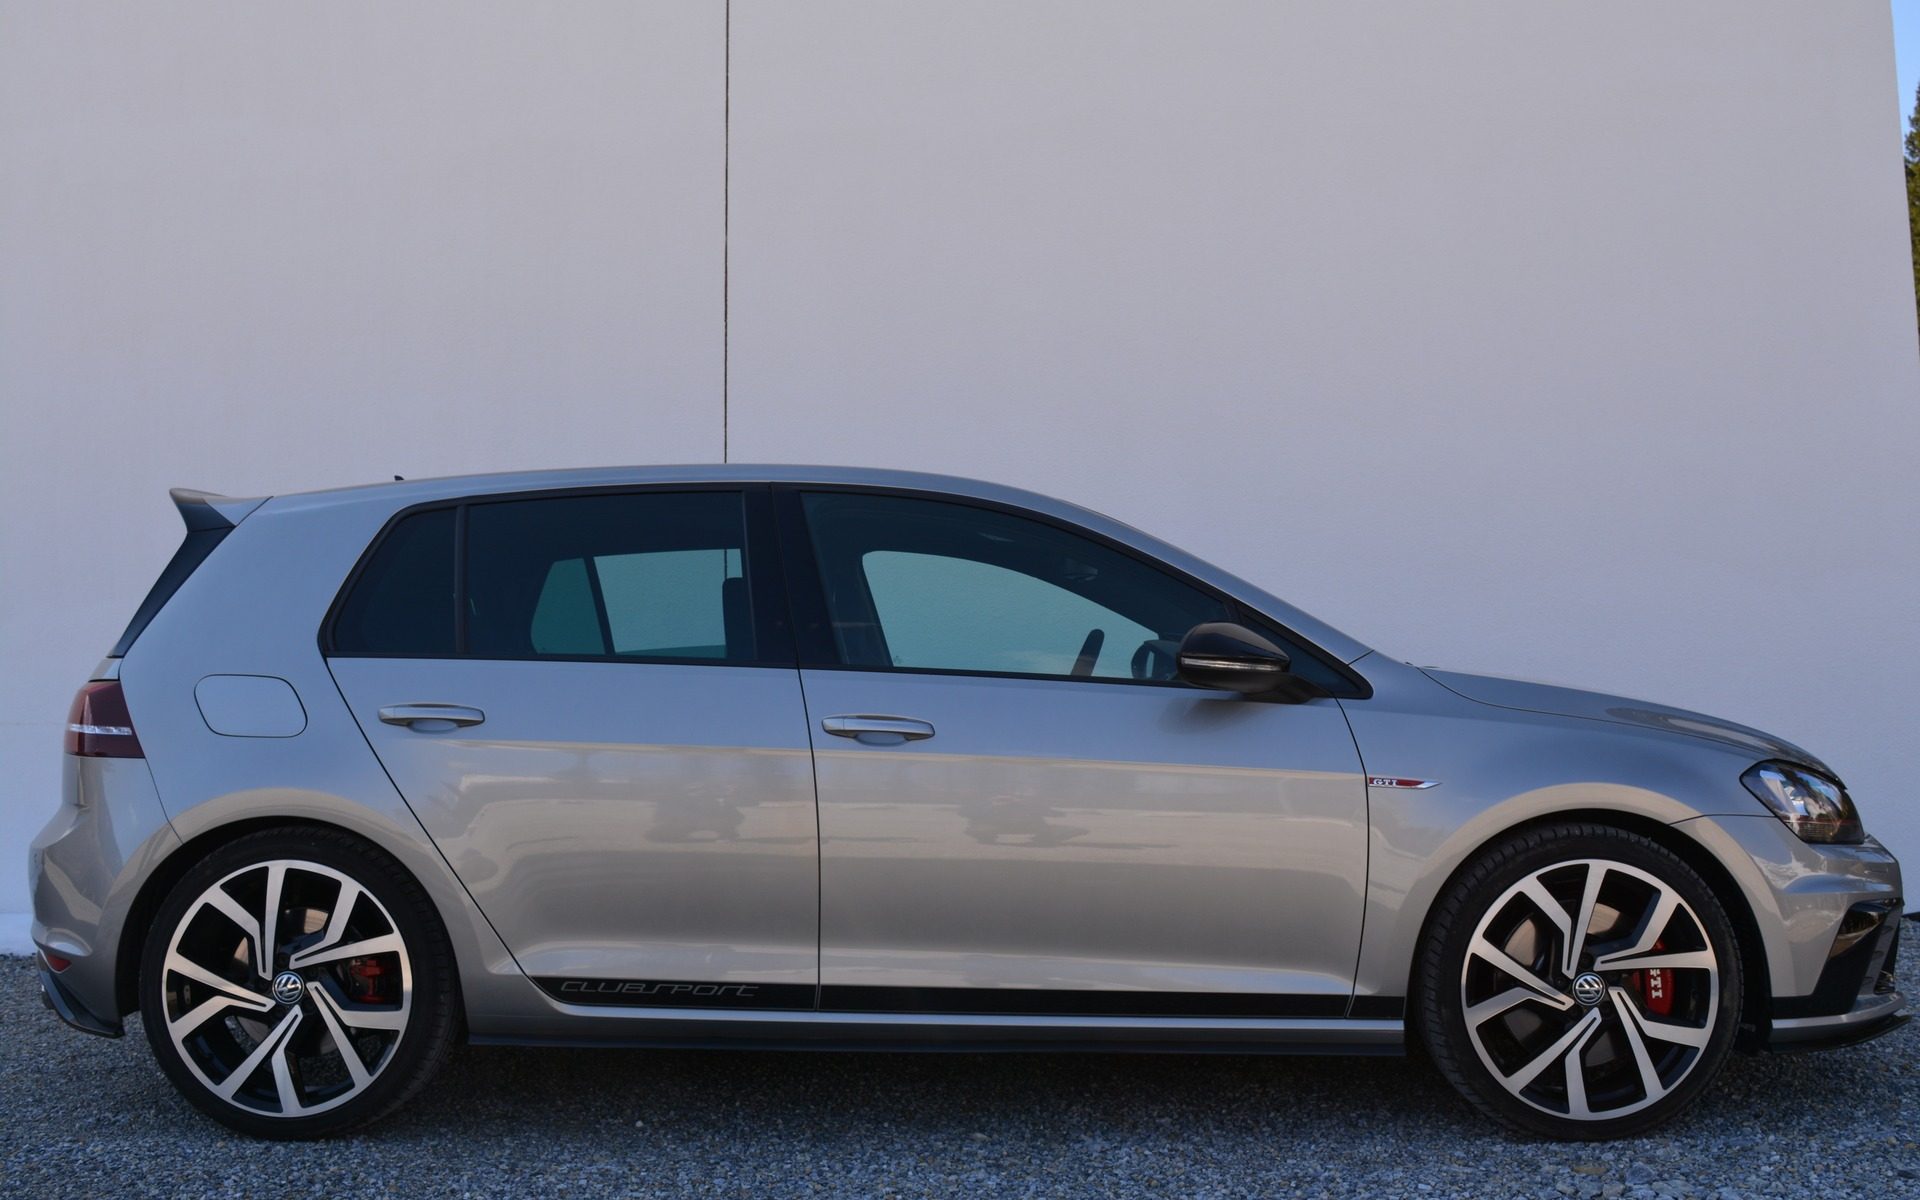 2016 Volkswagen Golf GTI Clubsport: A Golf on Cocaine - 15/16